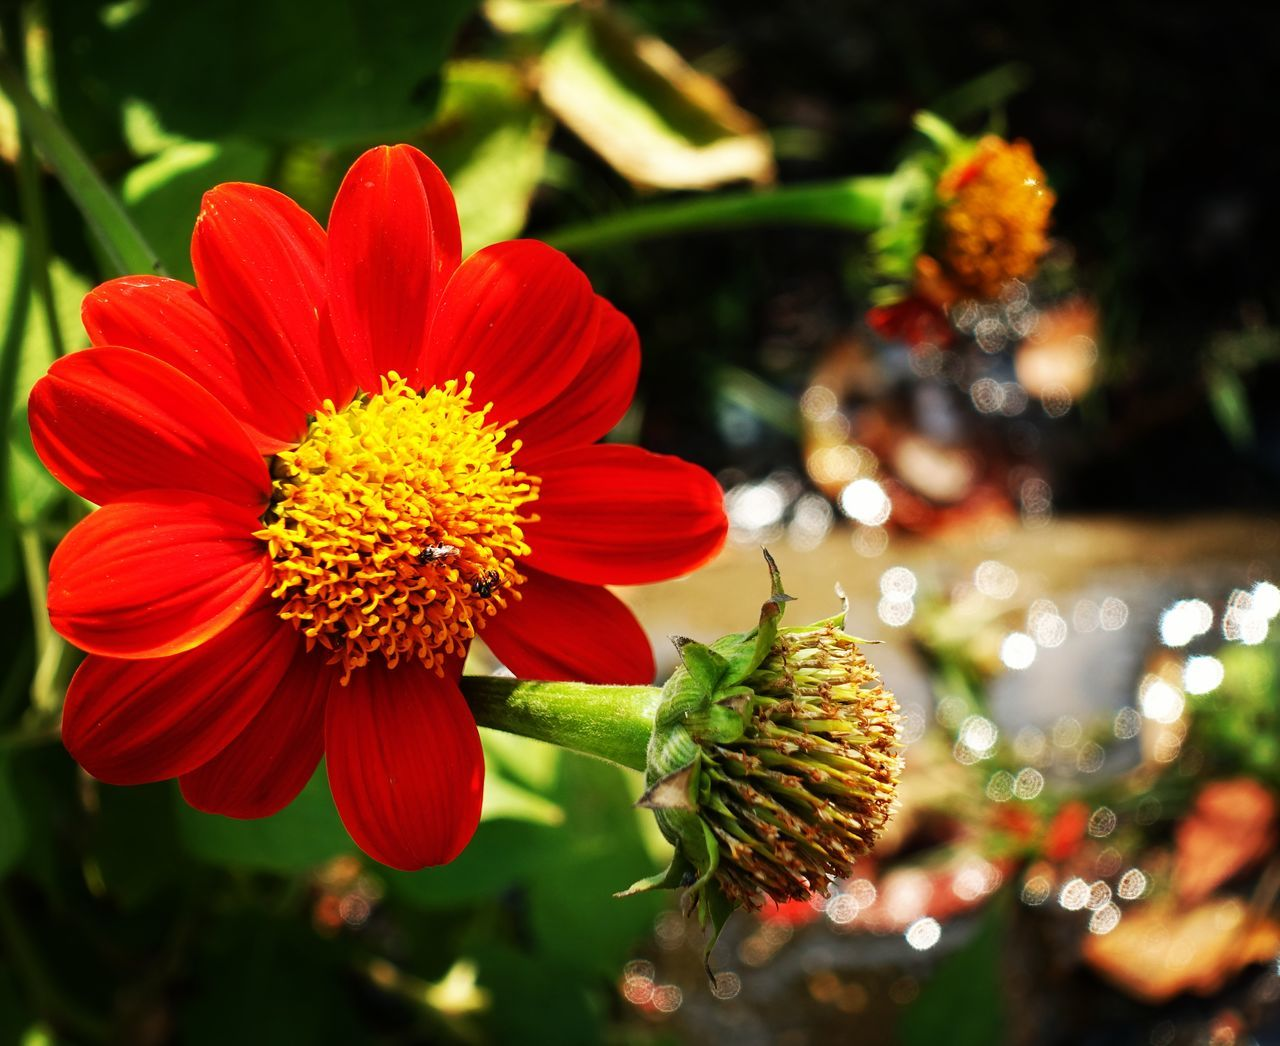 flower, plant, growth, nature, beauty in nature, fragility, freshness, focus on foreground, no people, petal, close-up, outdoors, red, flower head, blooming, day